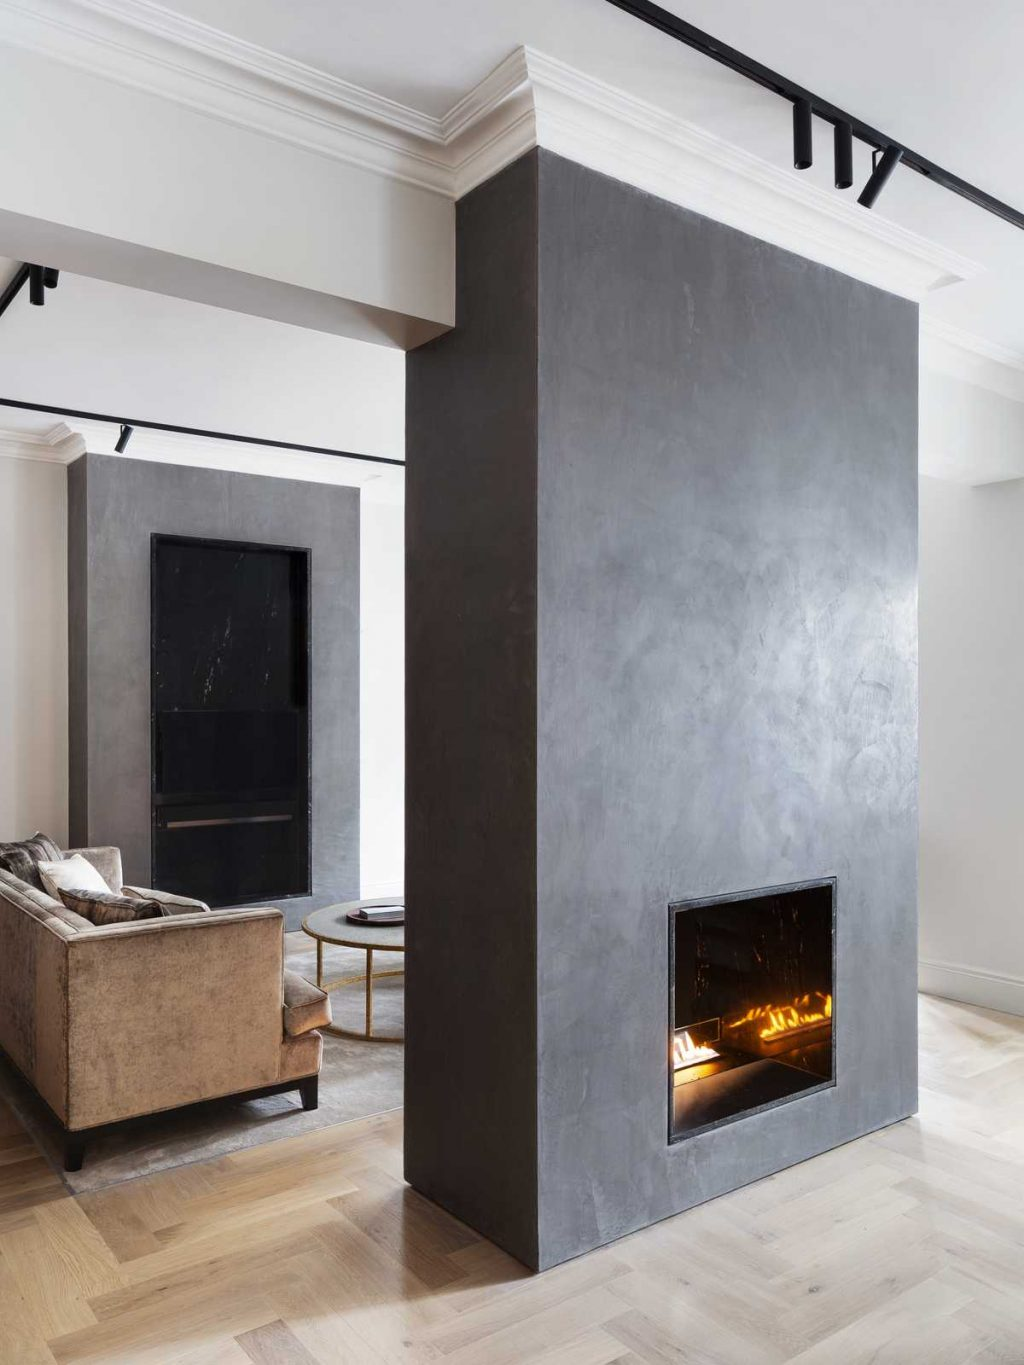 A Renovation Of a Flat in Edwardian mansion block by Syte Architects